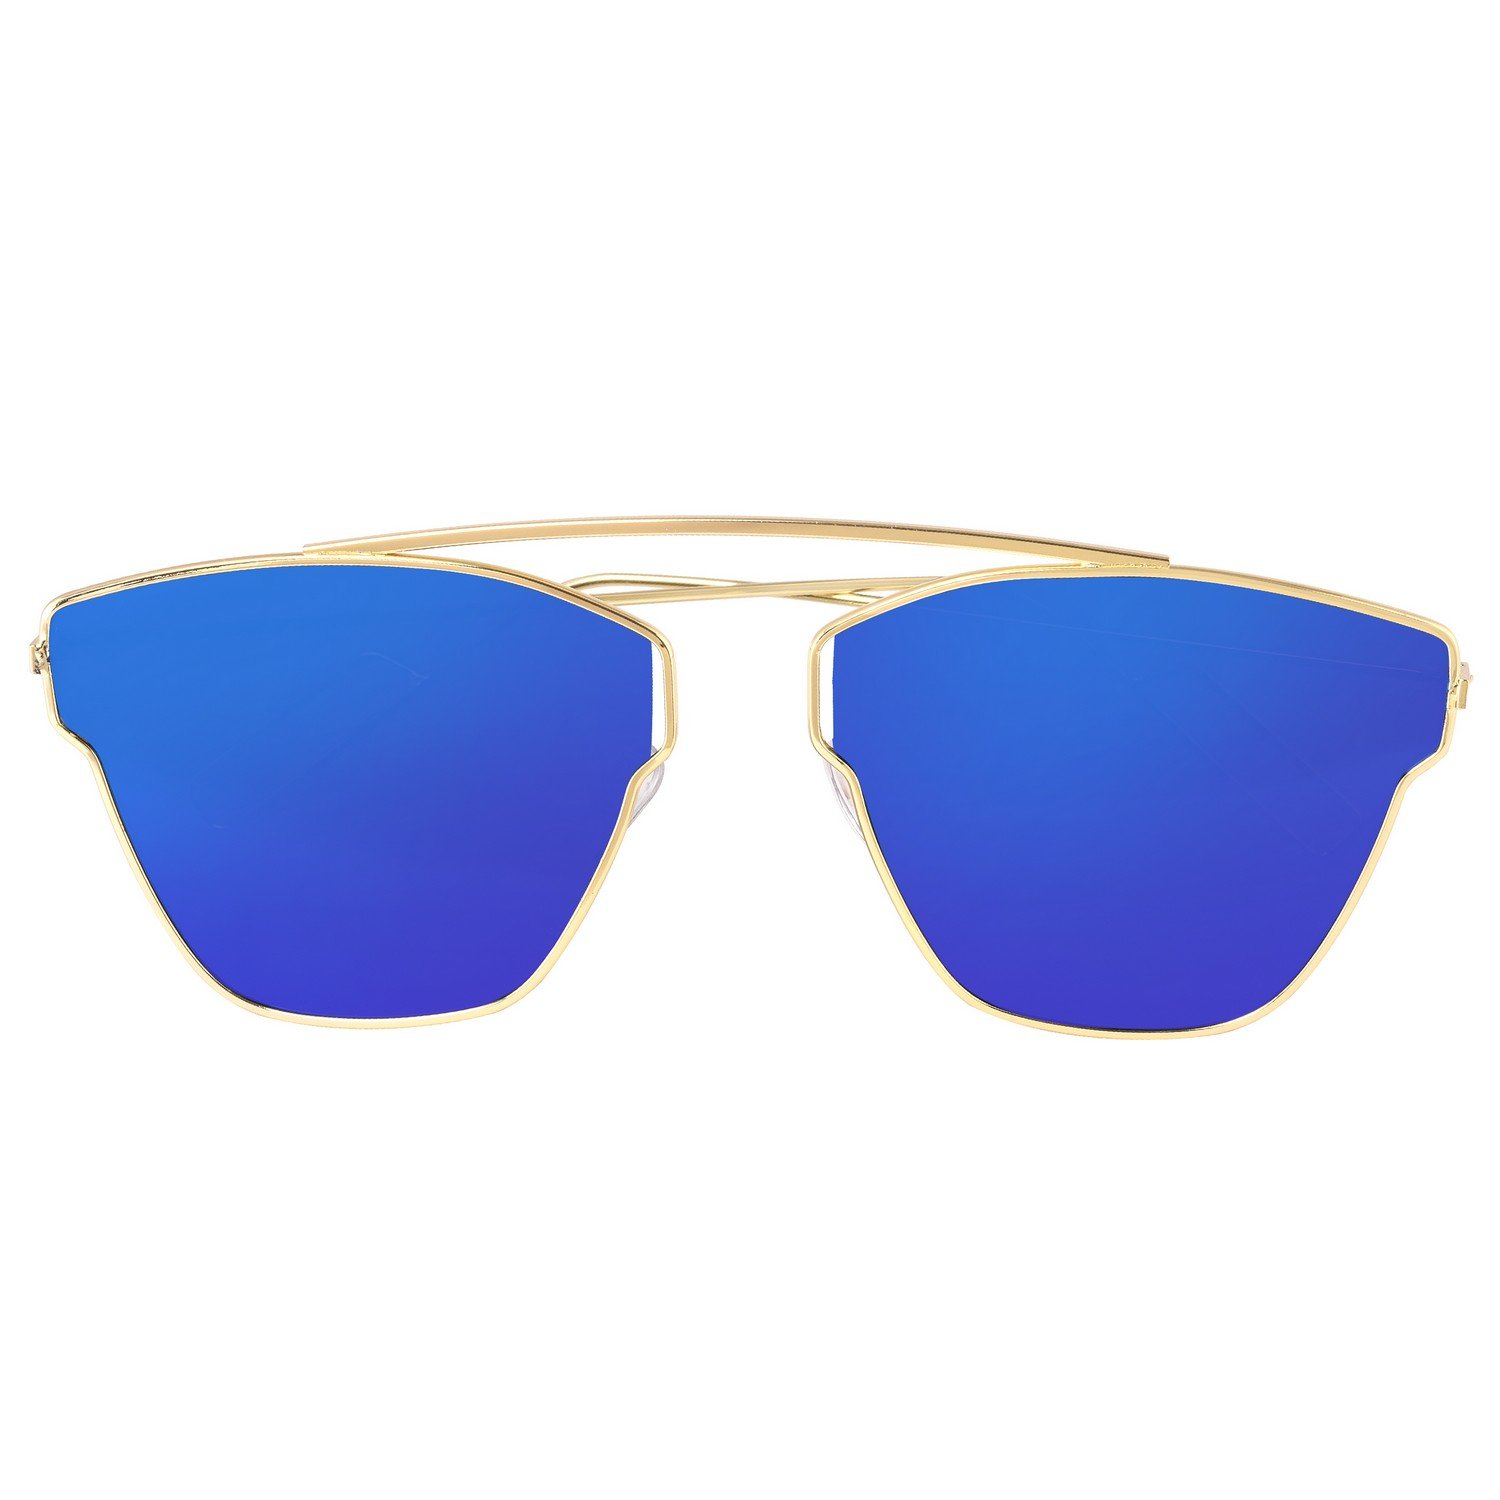 23267677cfd Dervin Blue Lens Golden Frame Wayfarer Sunglasses for Men and Women  Amazon. in  Clothing   Accessories